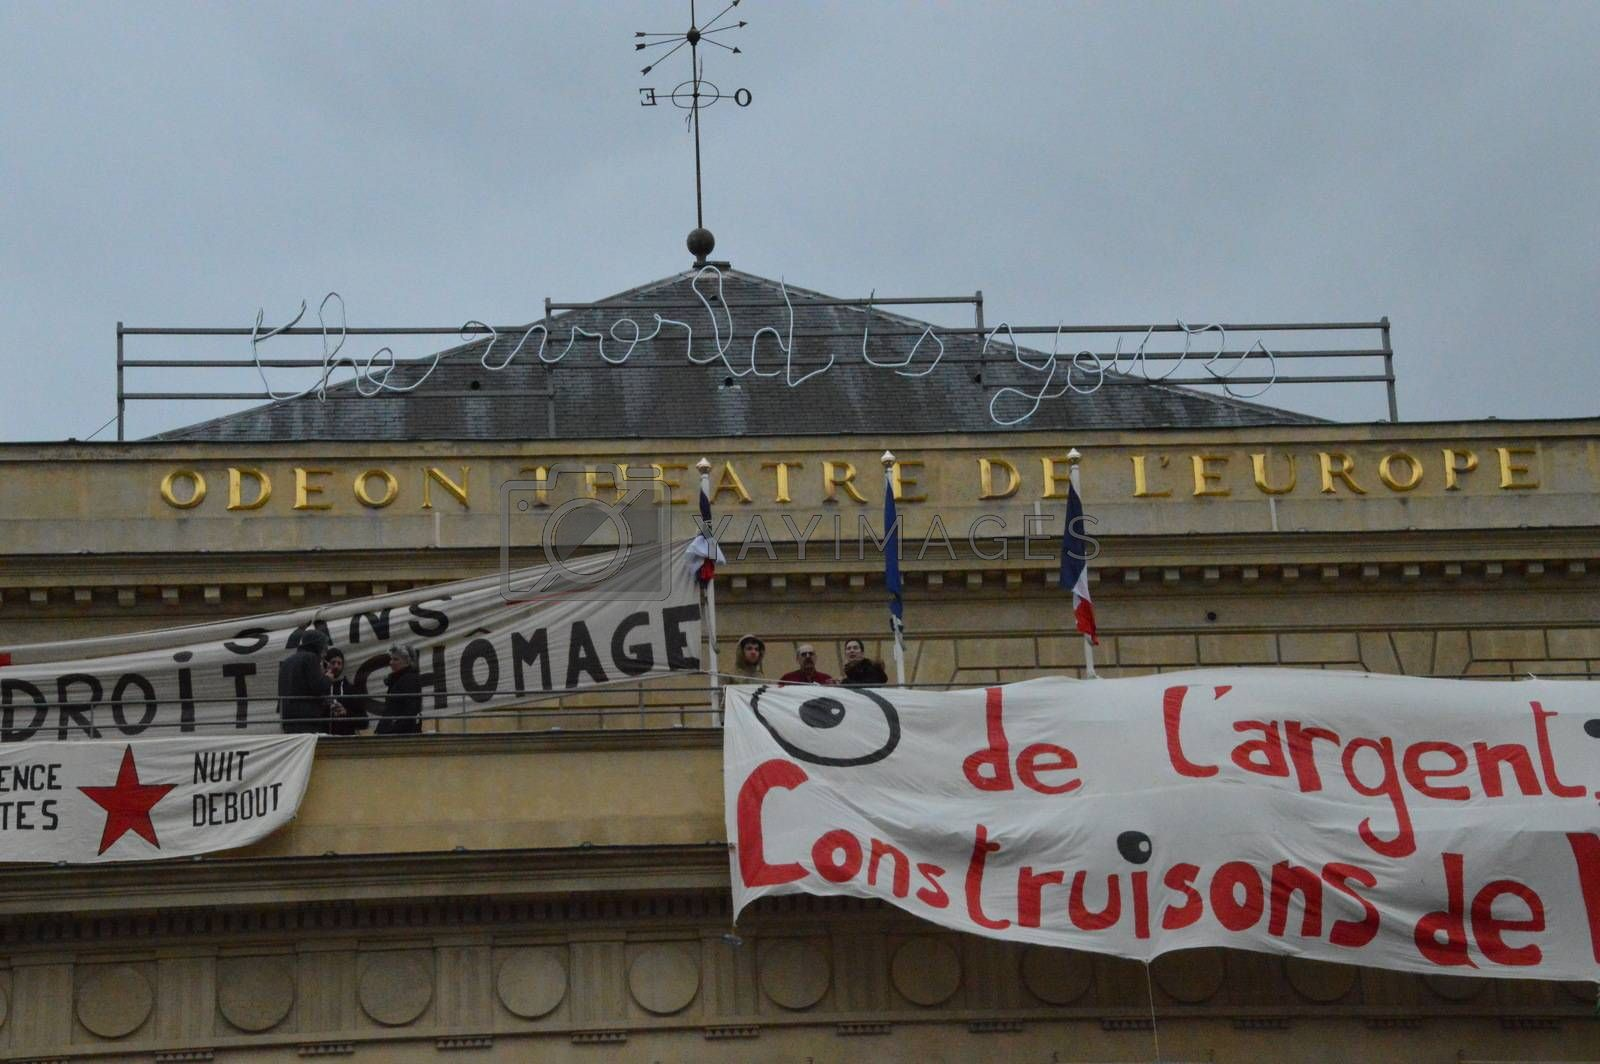 FRANCE, Paris : A man stands by banners reading There is money, let's build new rights displayed on the top of the Odeon theatre as French artists and entertainment workers known in France as intermittents du spectacle occupy the building in Paris on April 25, 2016. Around 50 people occupies the building to protest against the French government's proposed labour reforms and to demand the reshaping of the unemployment insurance before the start of the unemployment insurance negotiations, as part of a protest in conjunction with the Nuit Debout (Night Rising) movement against the French government's proposed labour reforms.